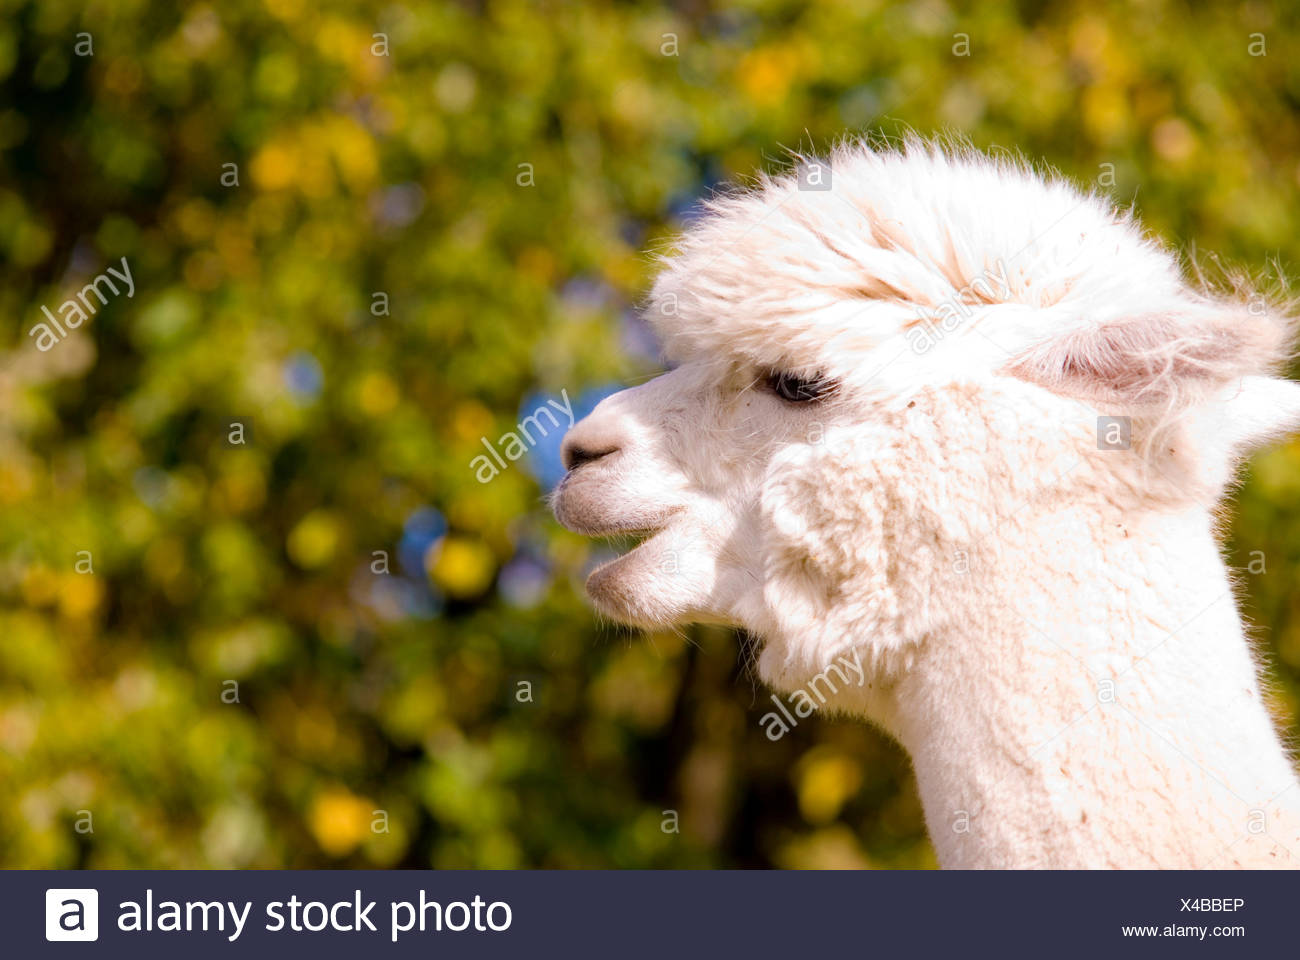 animal wool exotic - Stock Image